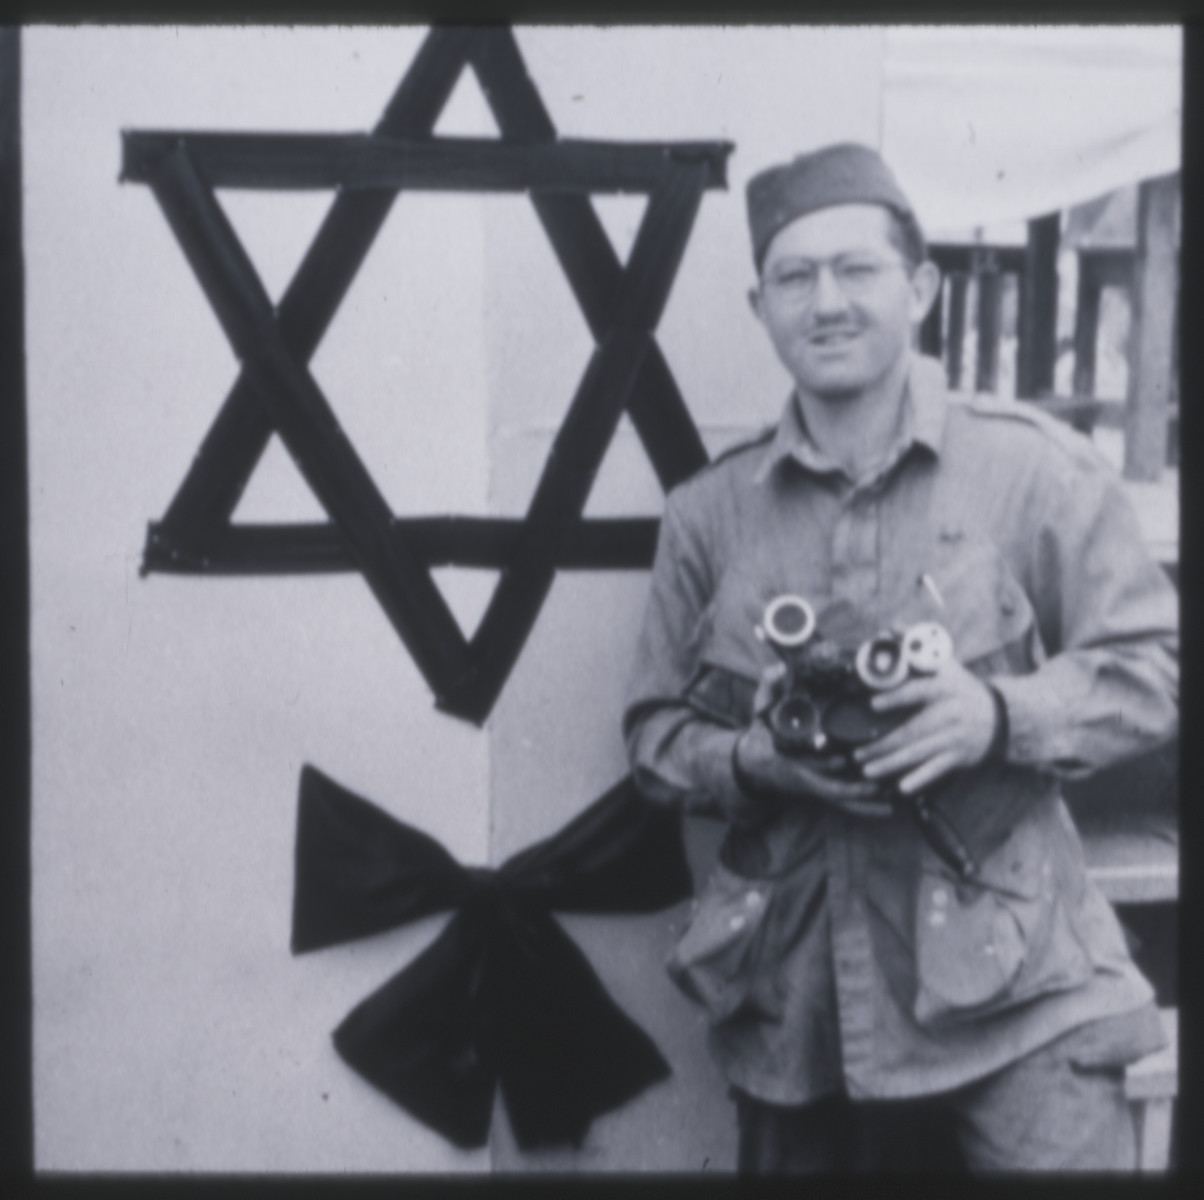 Portrait of photographer Phil Drell standing with his camera in front of a large Jewish star erected for the Dachau camp memorial.